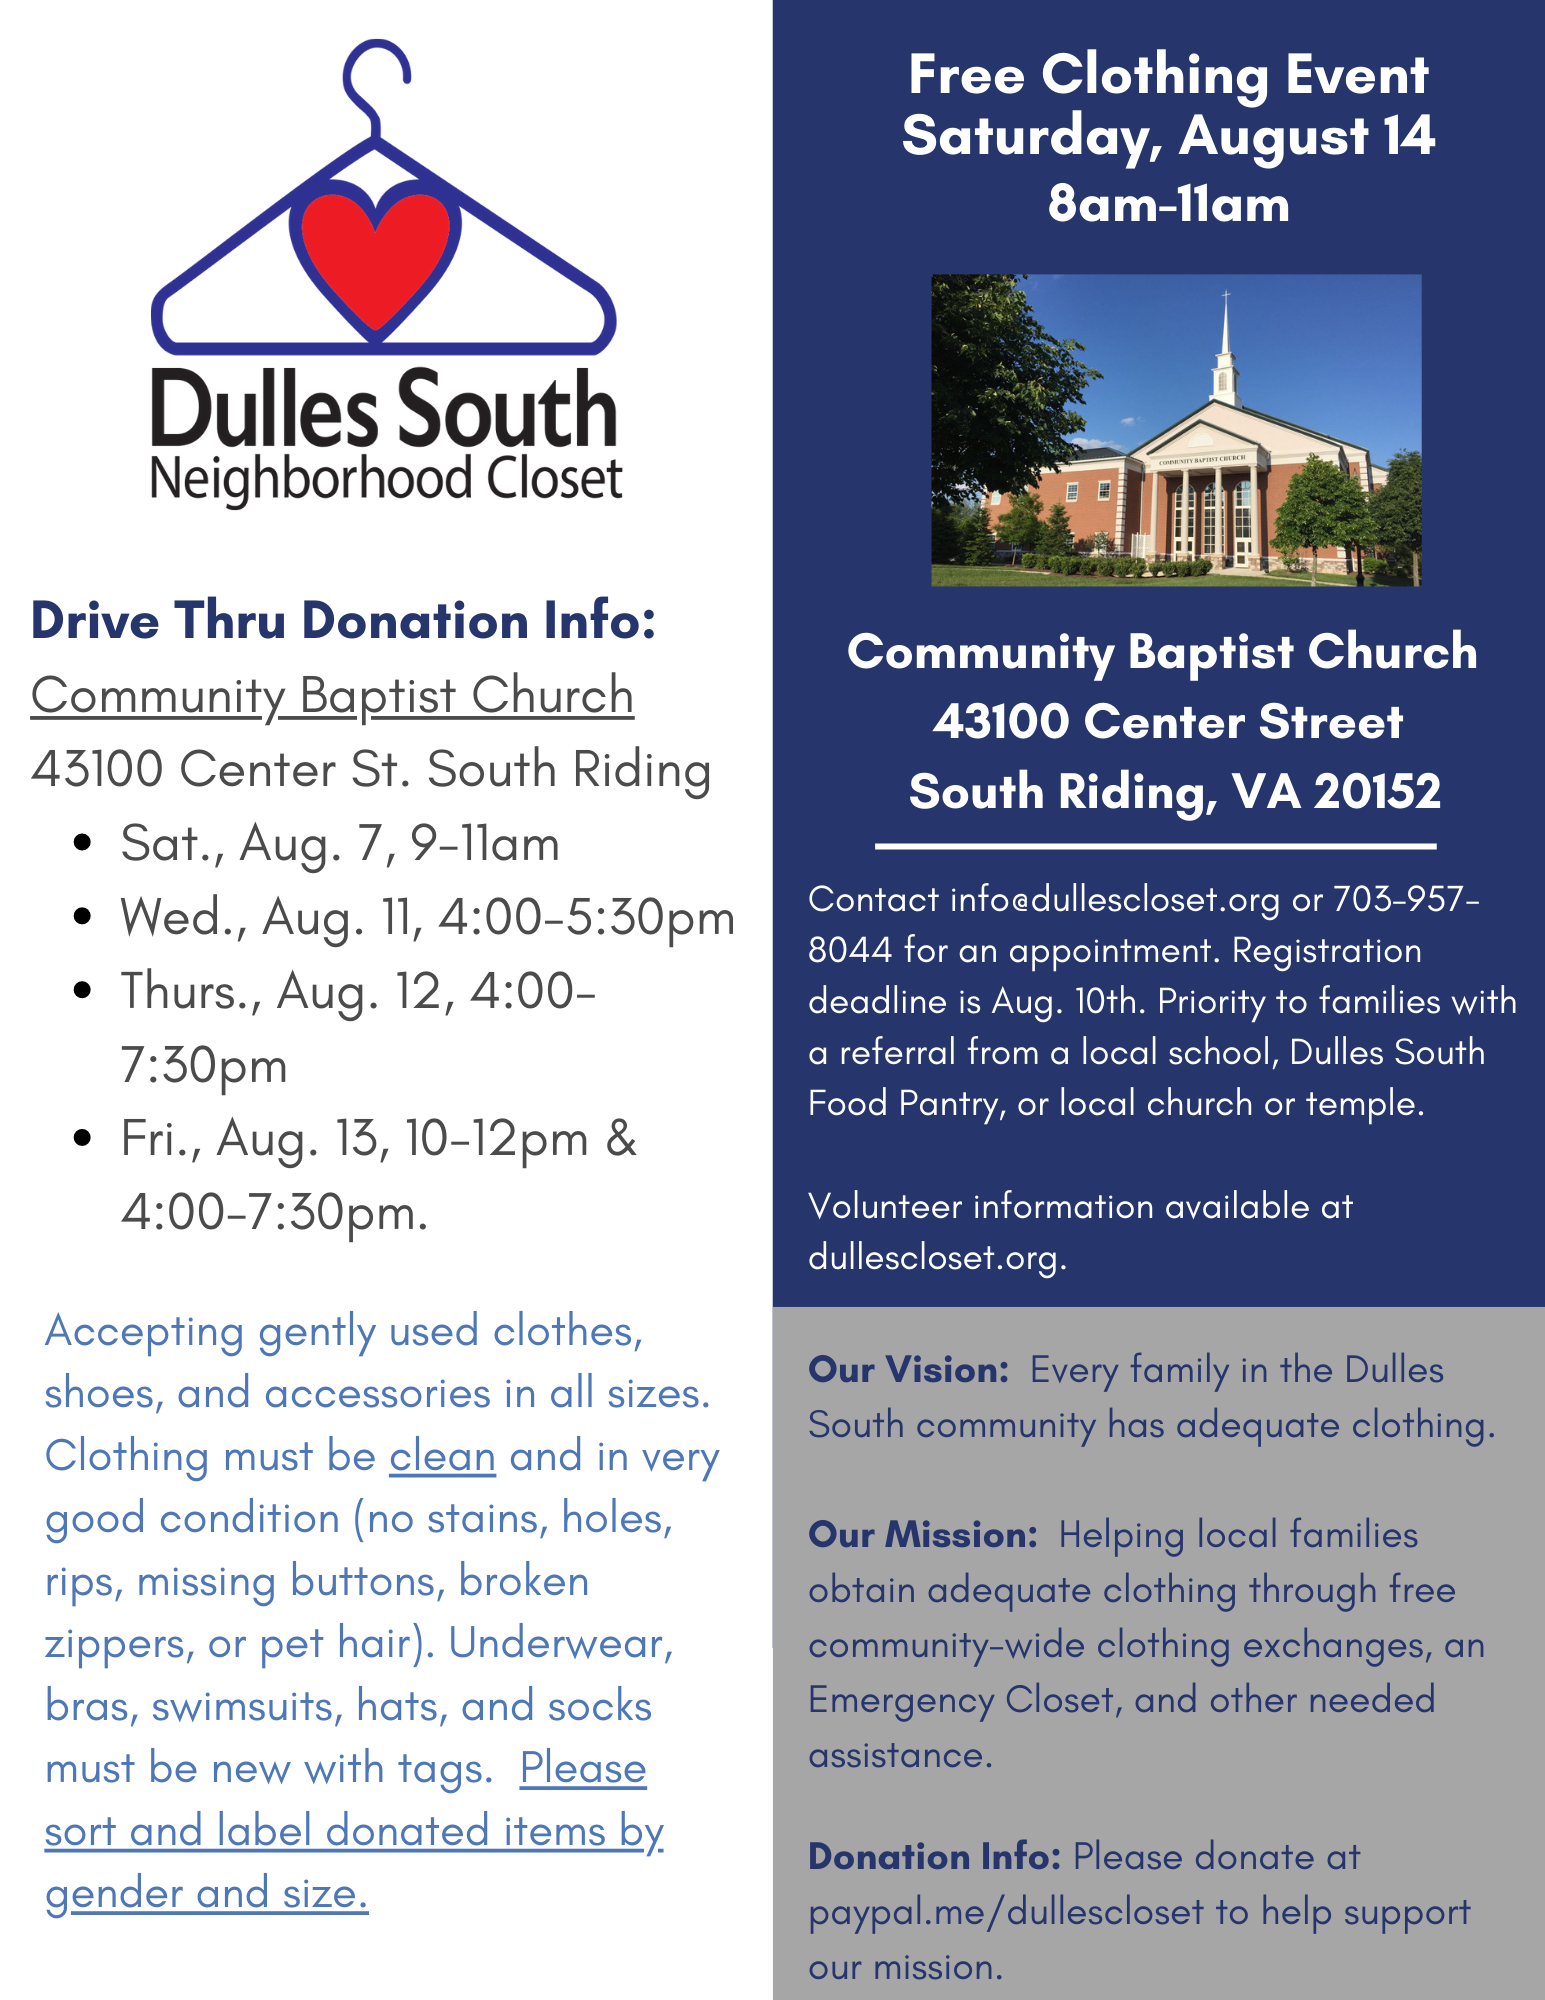 Dulles South Neighborhood Closet August Clothing Drive